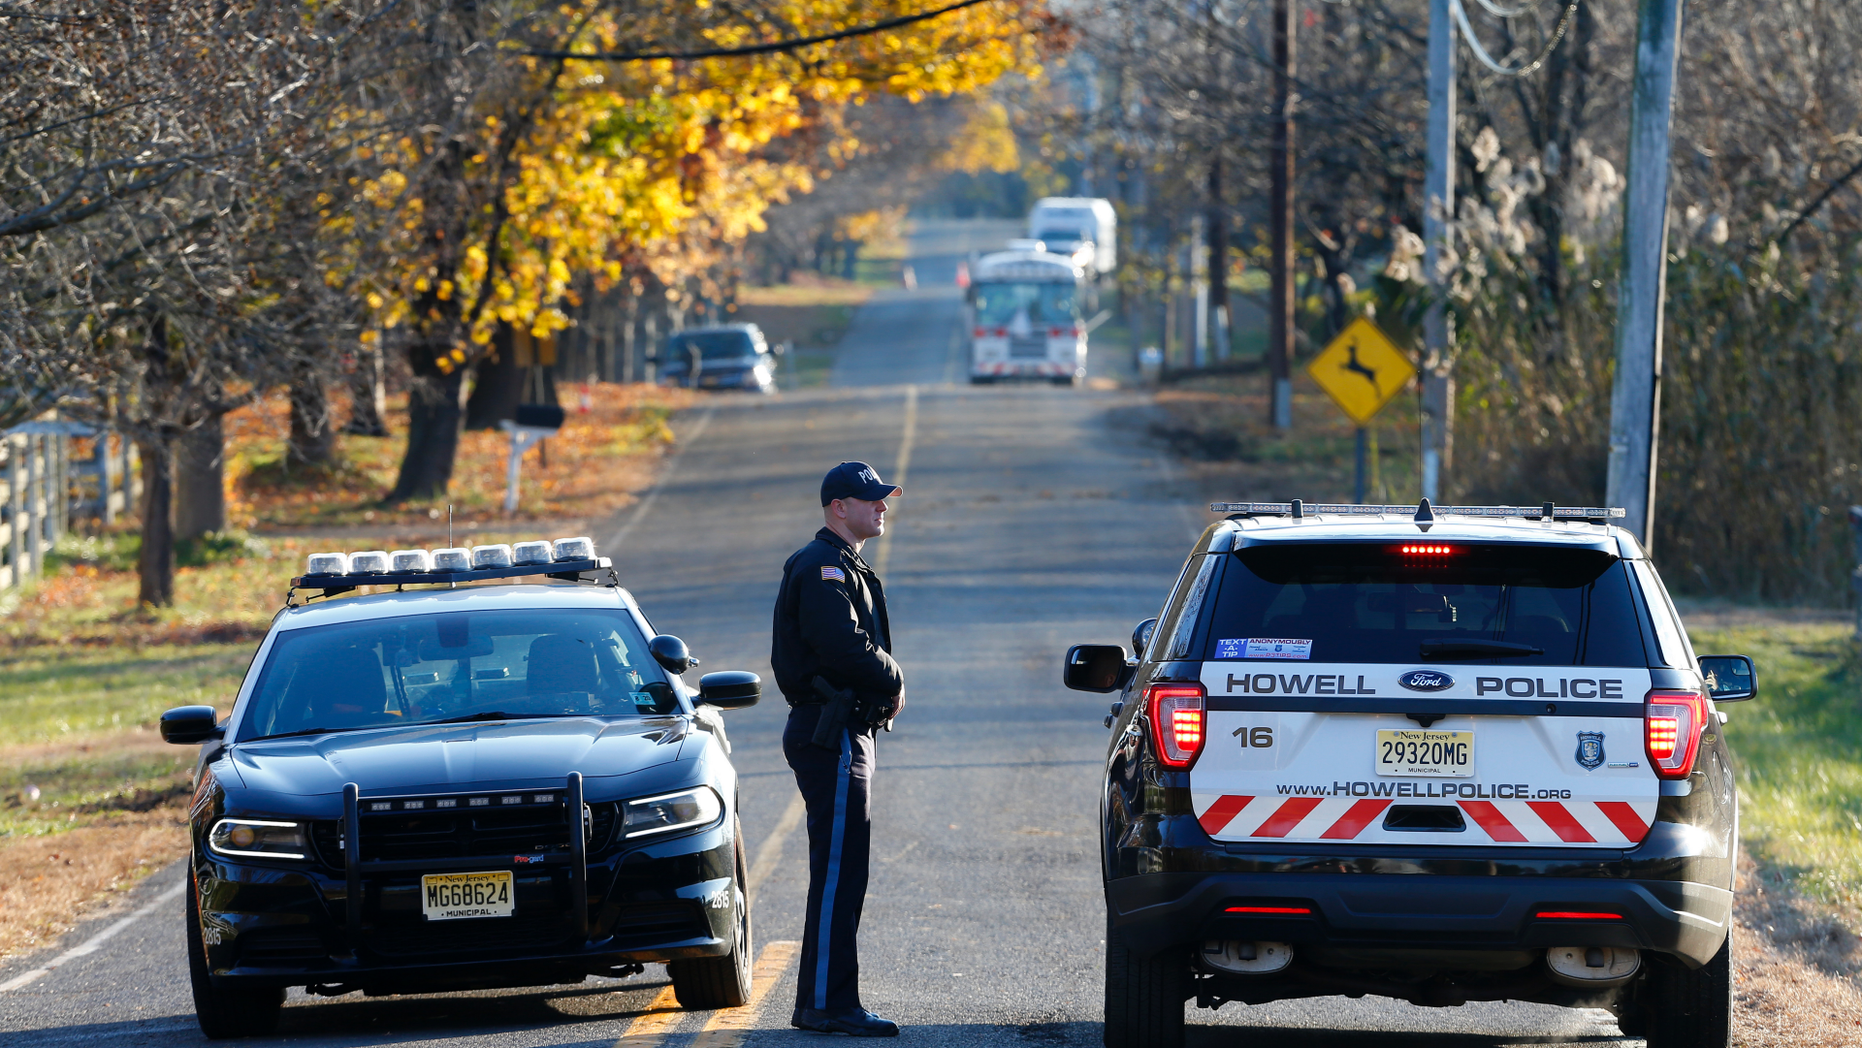 Colts Neck and Howell police officers block the road Wednesday, Nov. 21, 2018, in Colts Neck, N.J., leading to the scene of a fatal fire that killed two children and two adults. Authorities say two adults and two children were found dead the day before at the scene of a burning mansion near the New Jersey shore.  (AP Photo/Noah K. Murray)